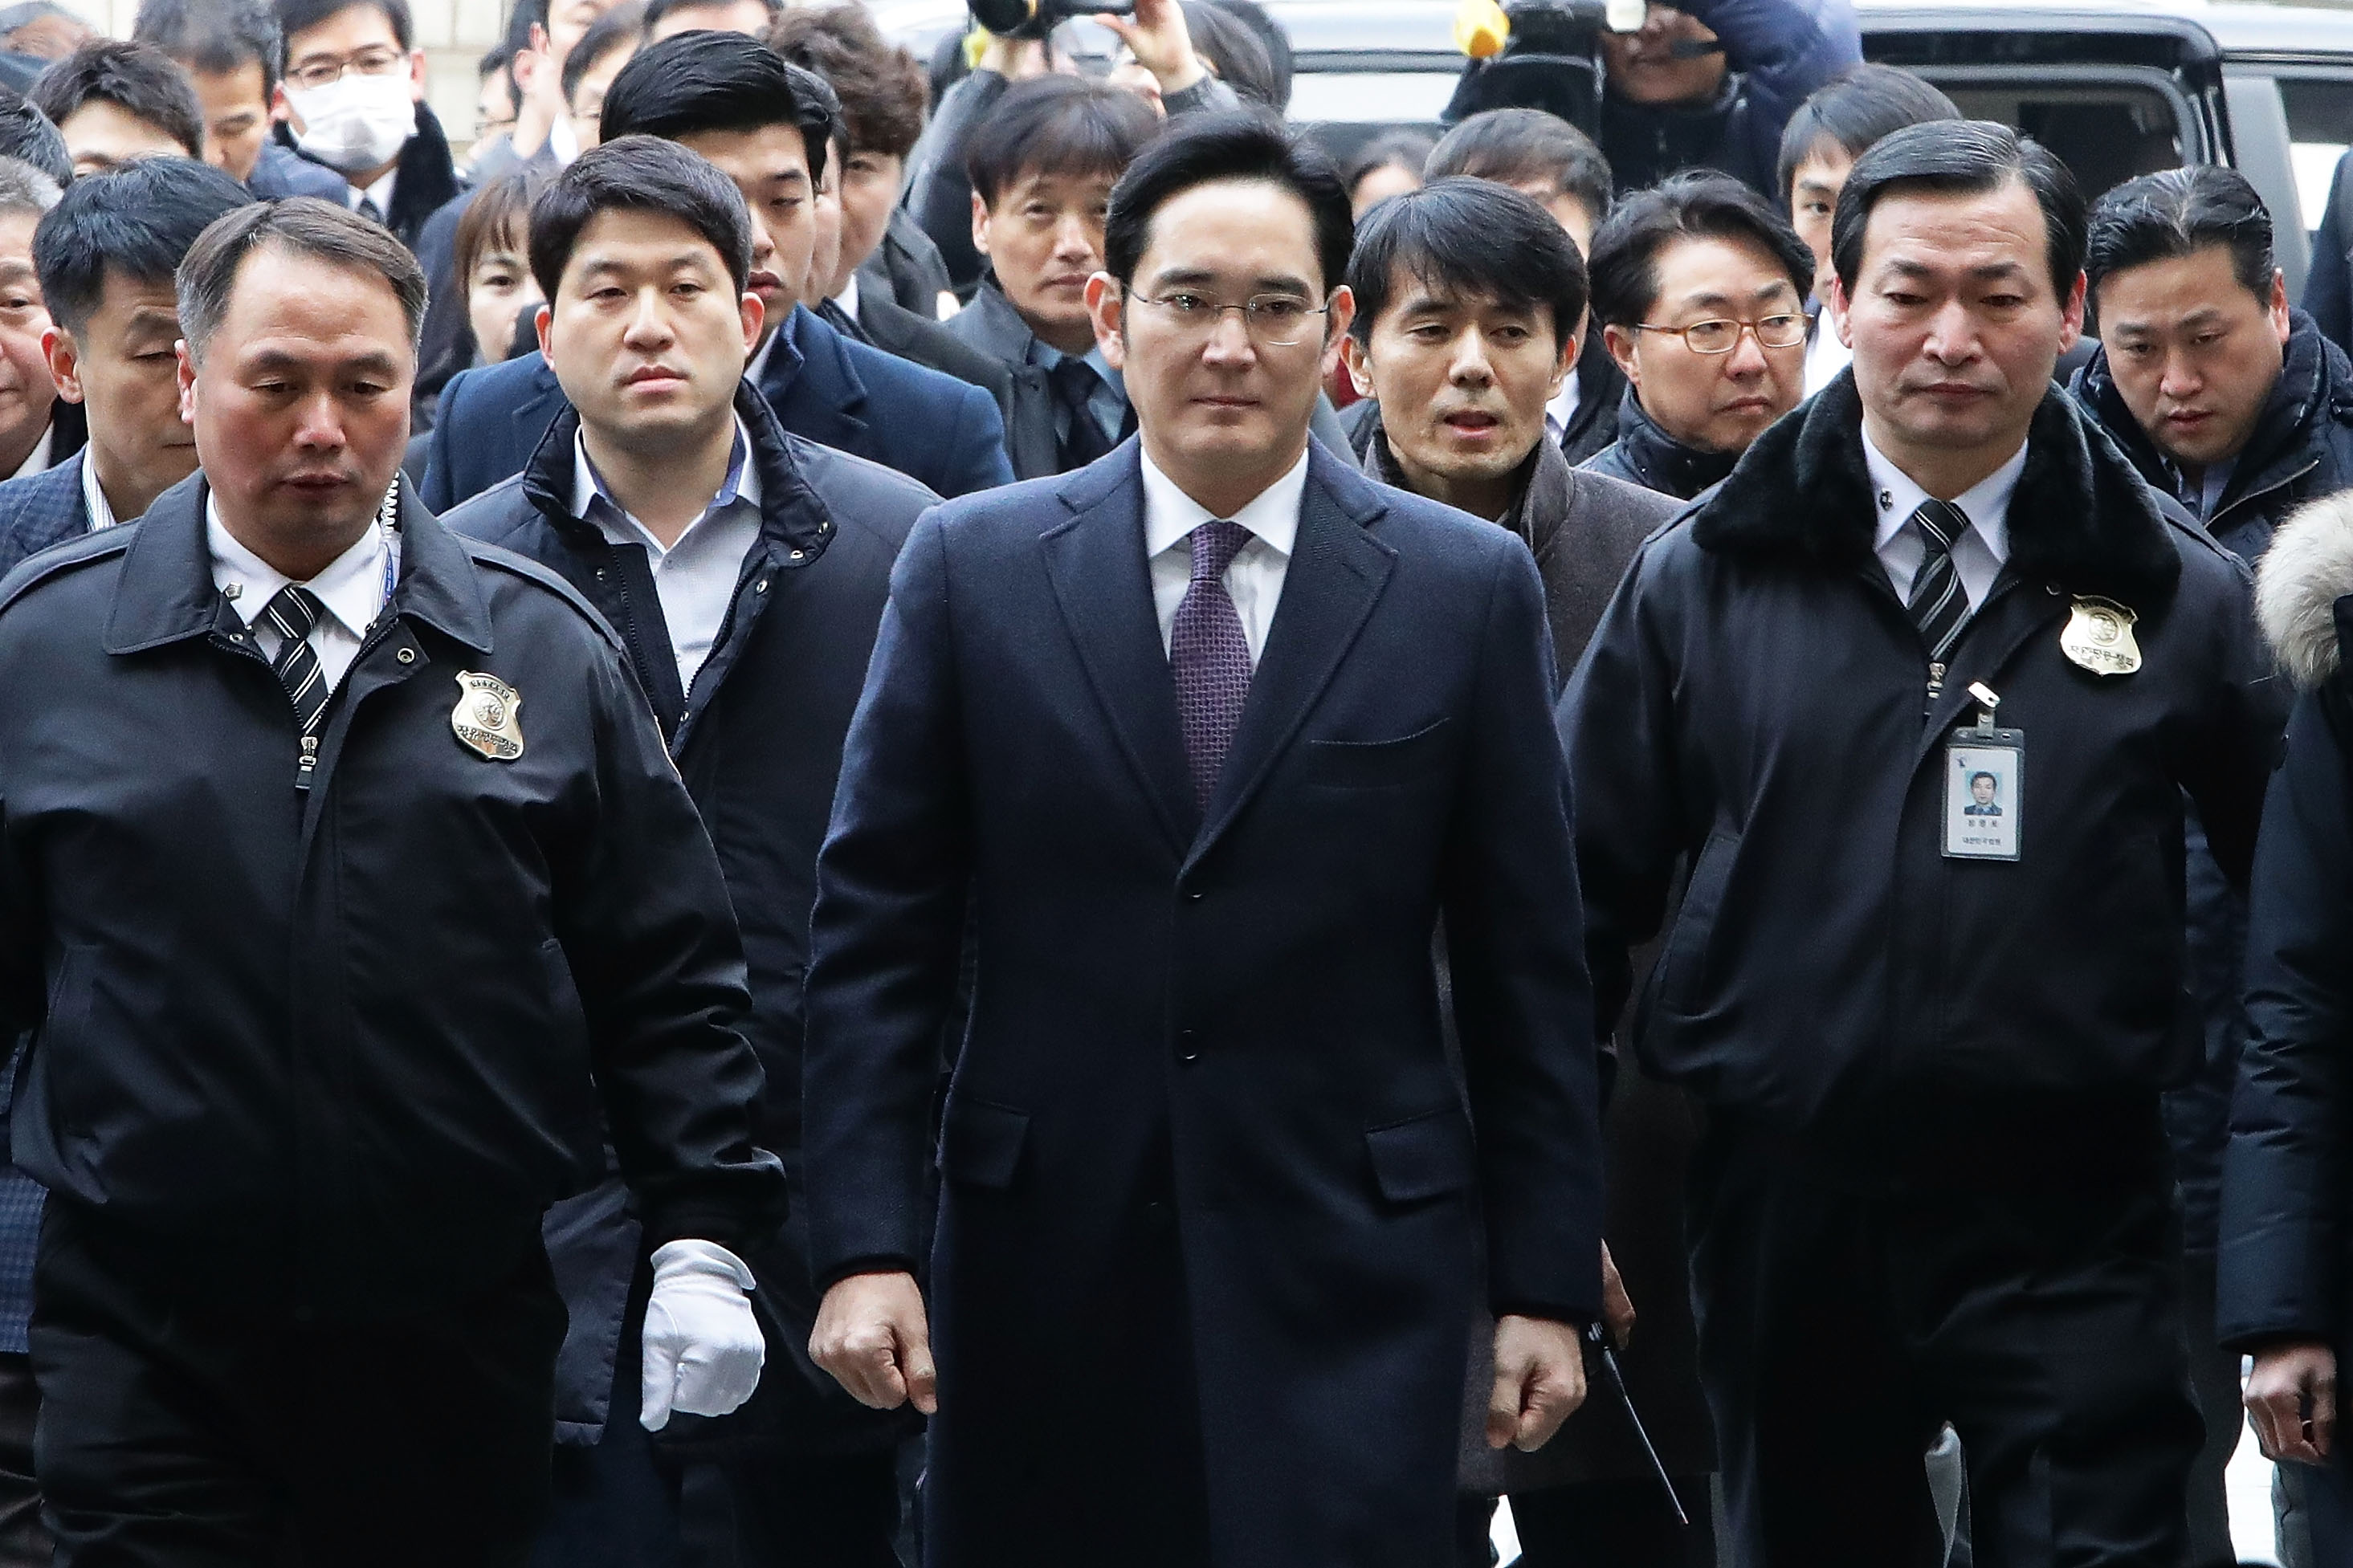 Samsung Vice Chairman Lee Jae-Yong Arrives At Court